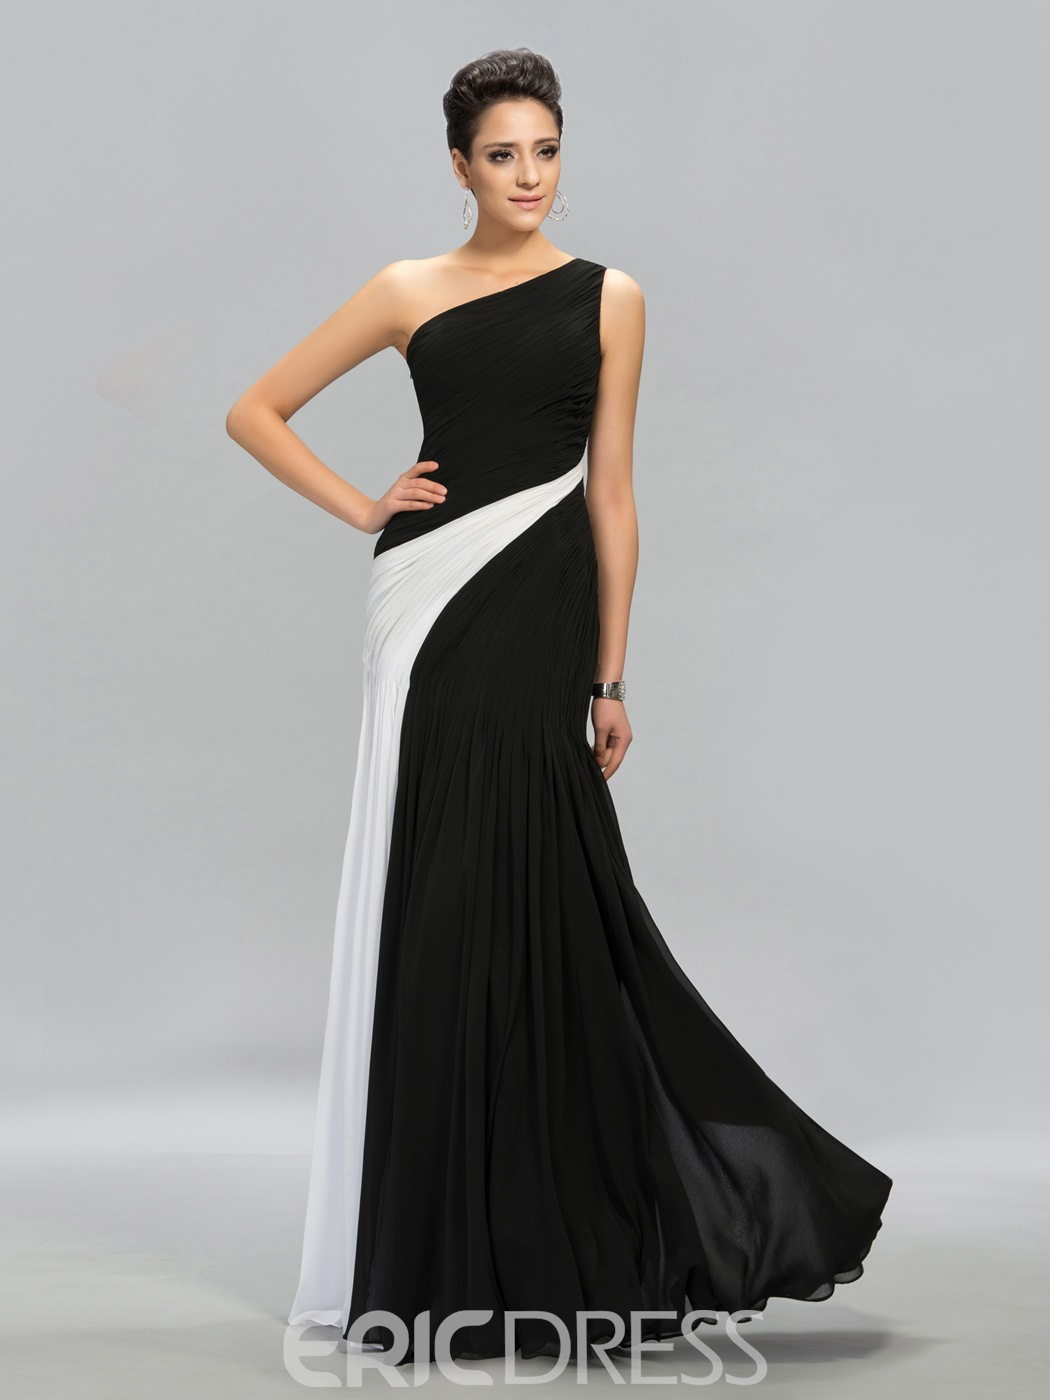 Terrific Contrast Color Ruched One-Shoulder Floor-Length Evening Dress